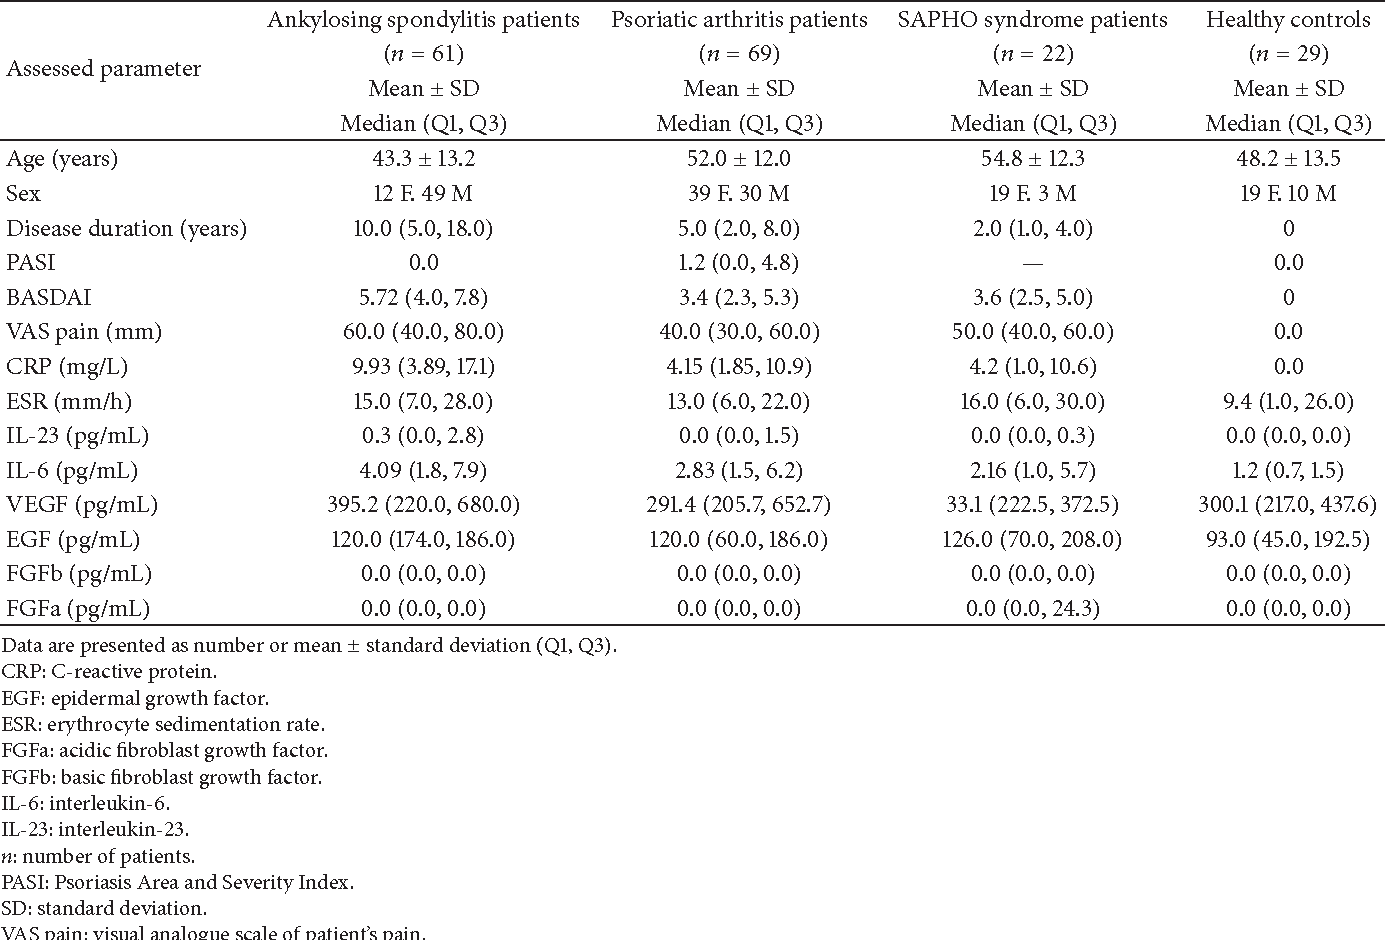 Table 1: Clinical and laboratory characteristics of ankylosing spondylitis, psoriatic arthritis, and SAPHO syndrome patients and healthy controls.